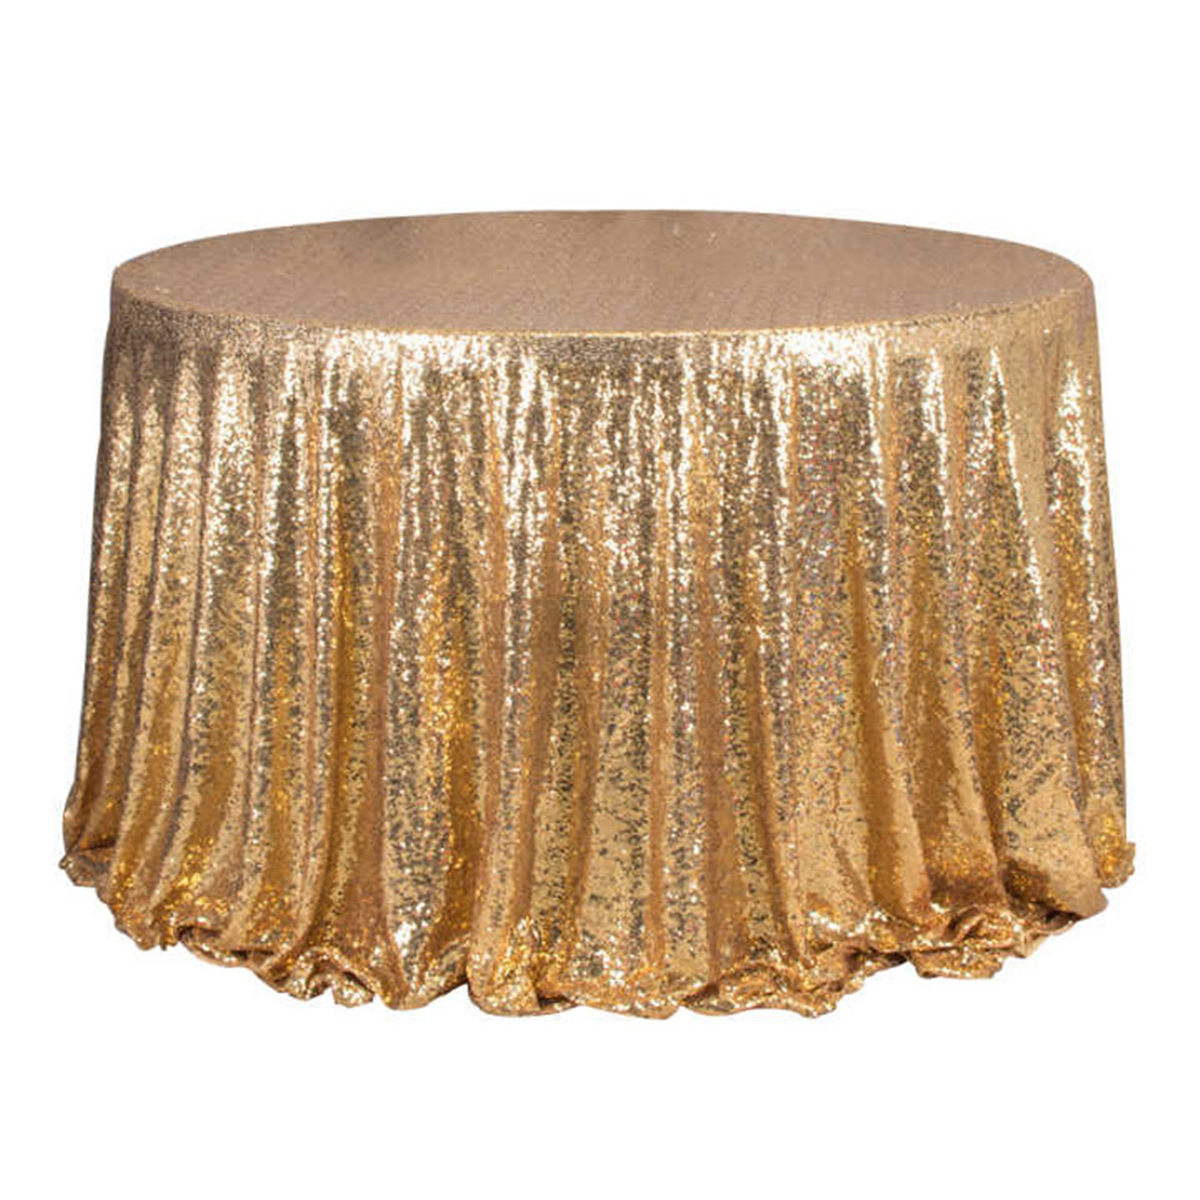 48 Quot Round Sparkly Sequin Table Cloth Cover Glitter For